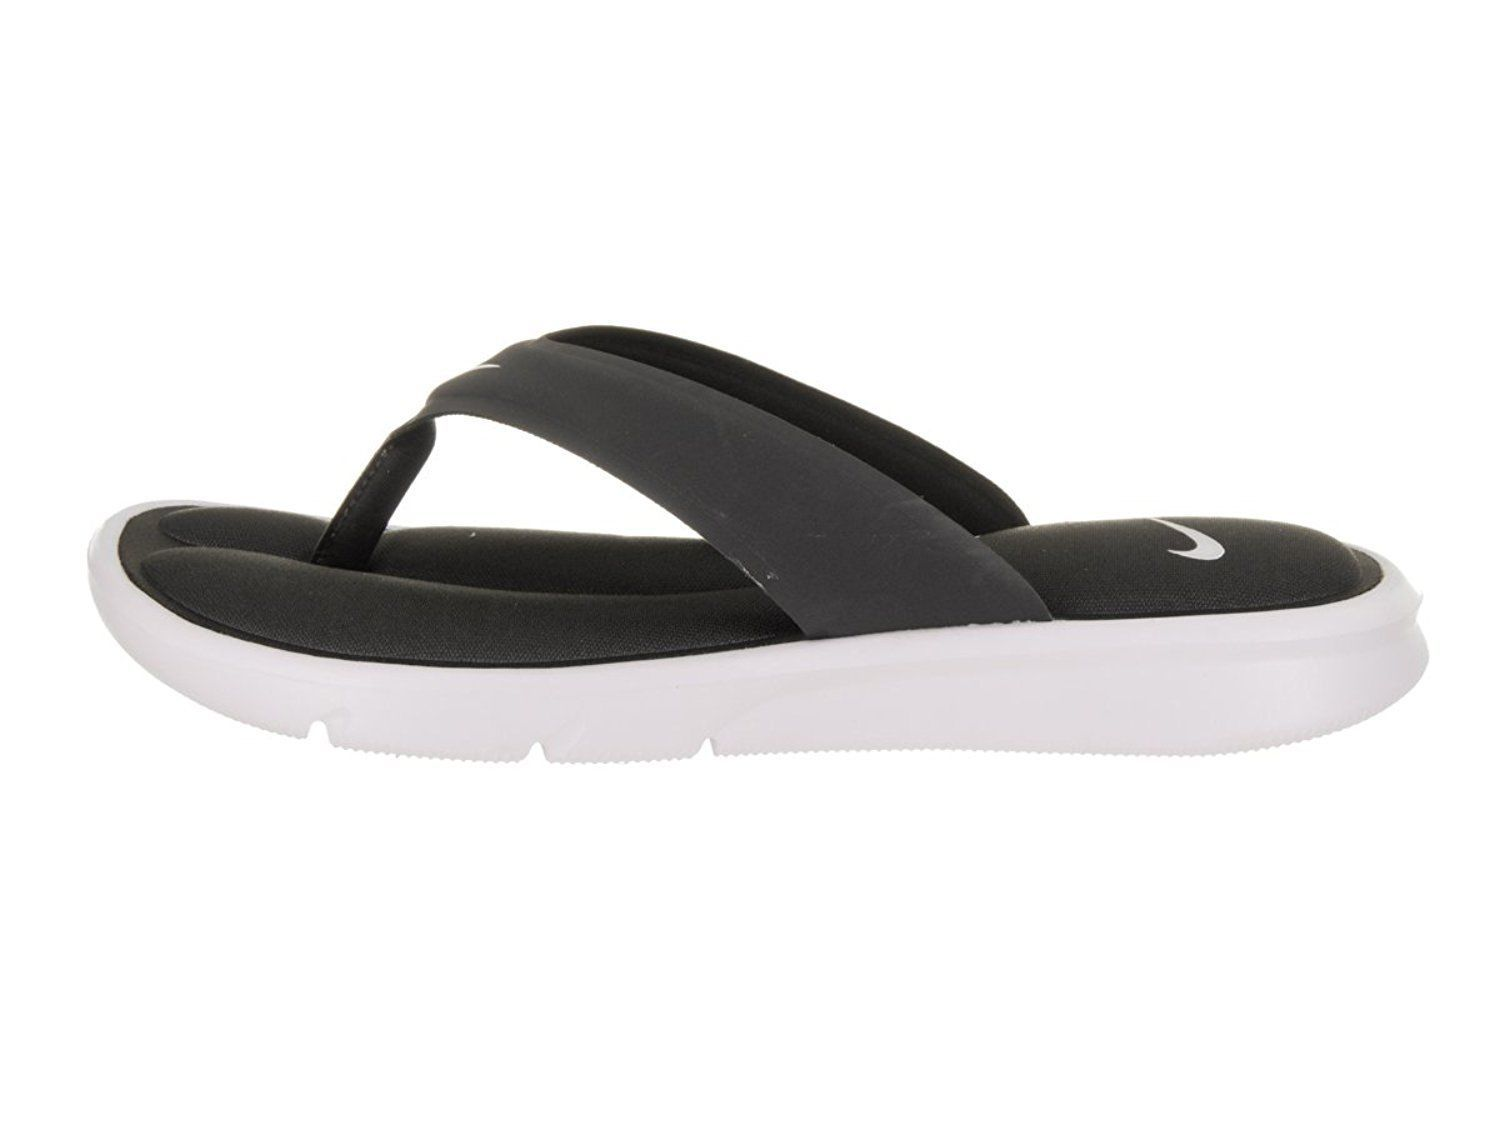 Women's Nike Ultra Comfort Thong Sandals, 882697 004 Size 6 Anthracite/White image 2